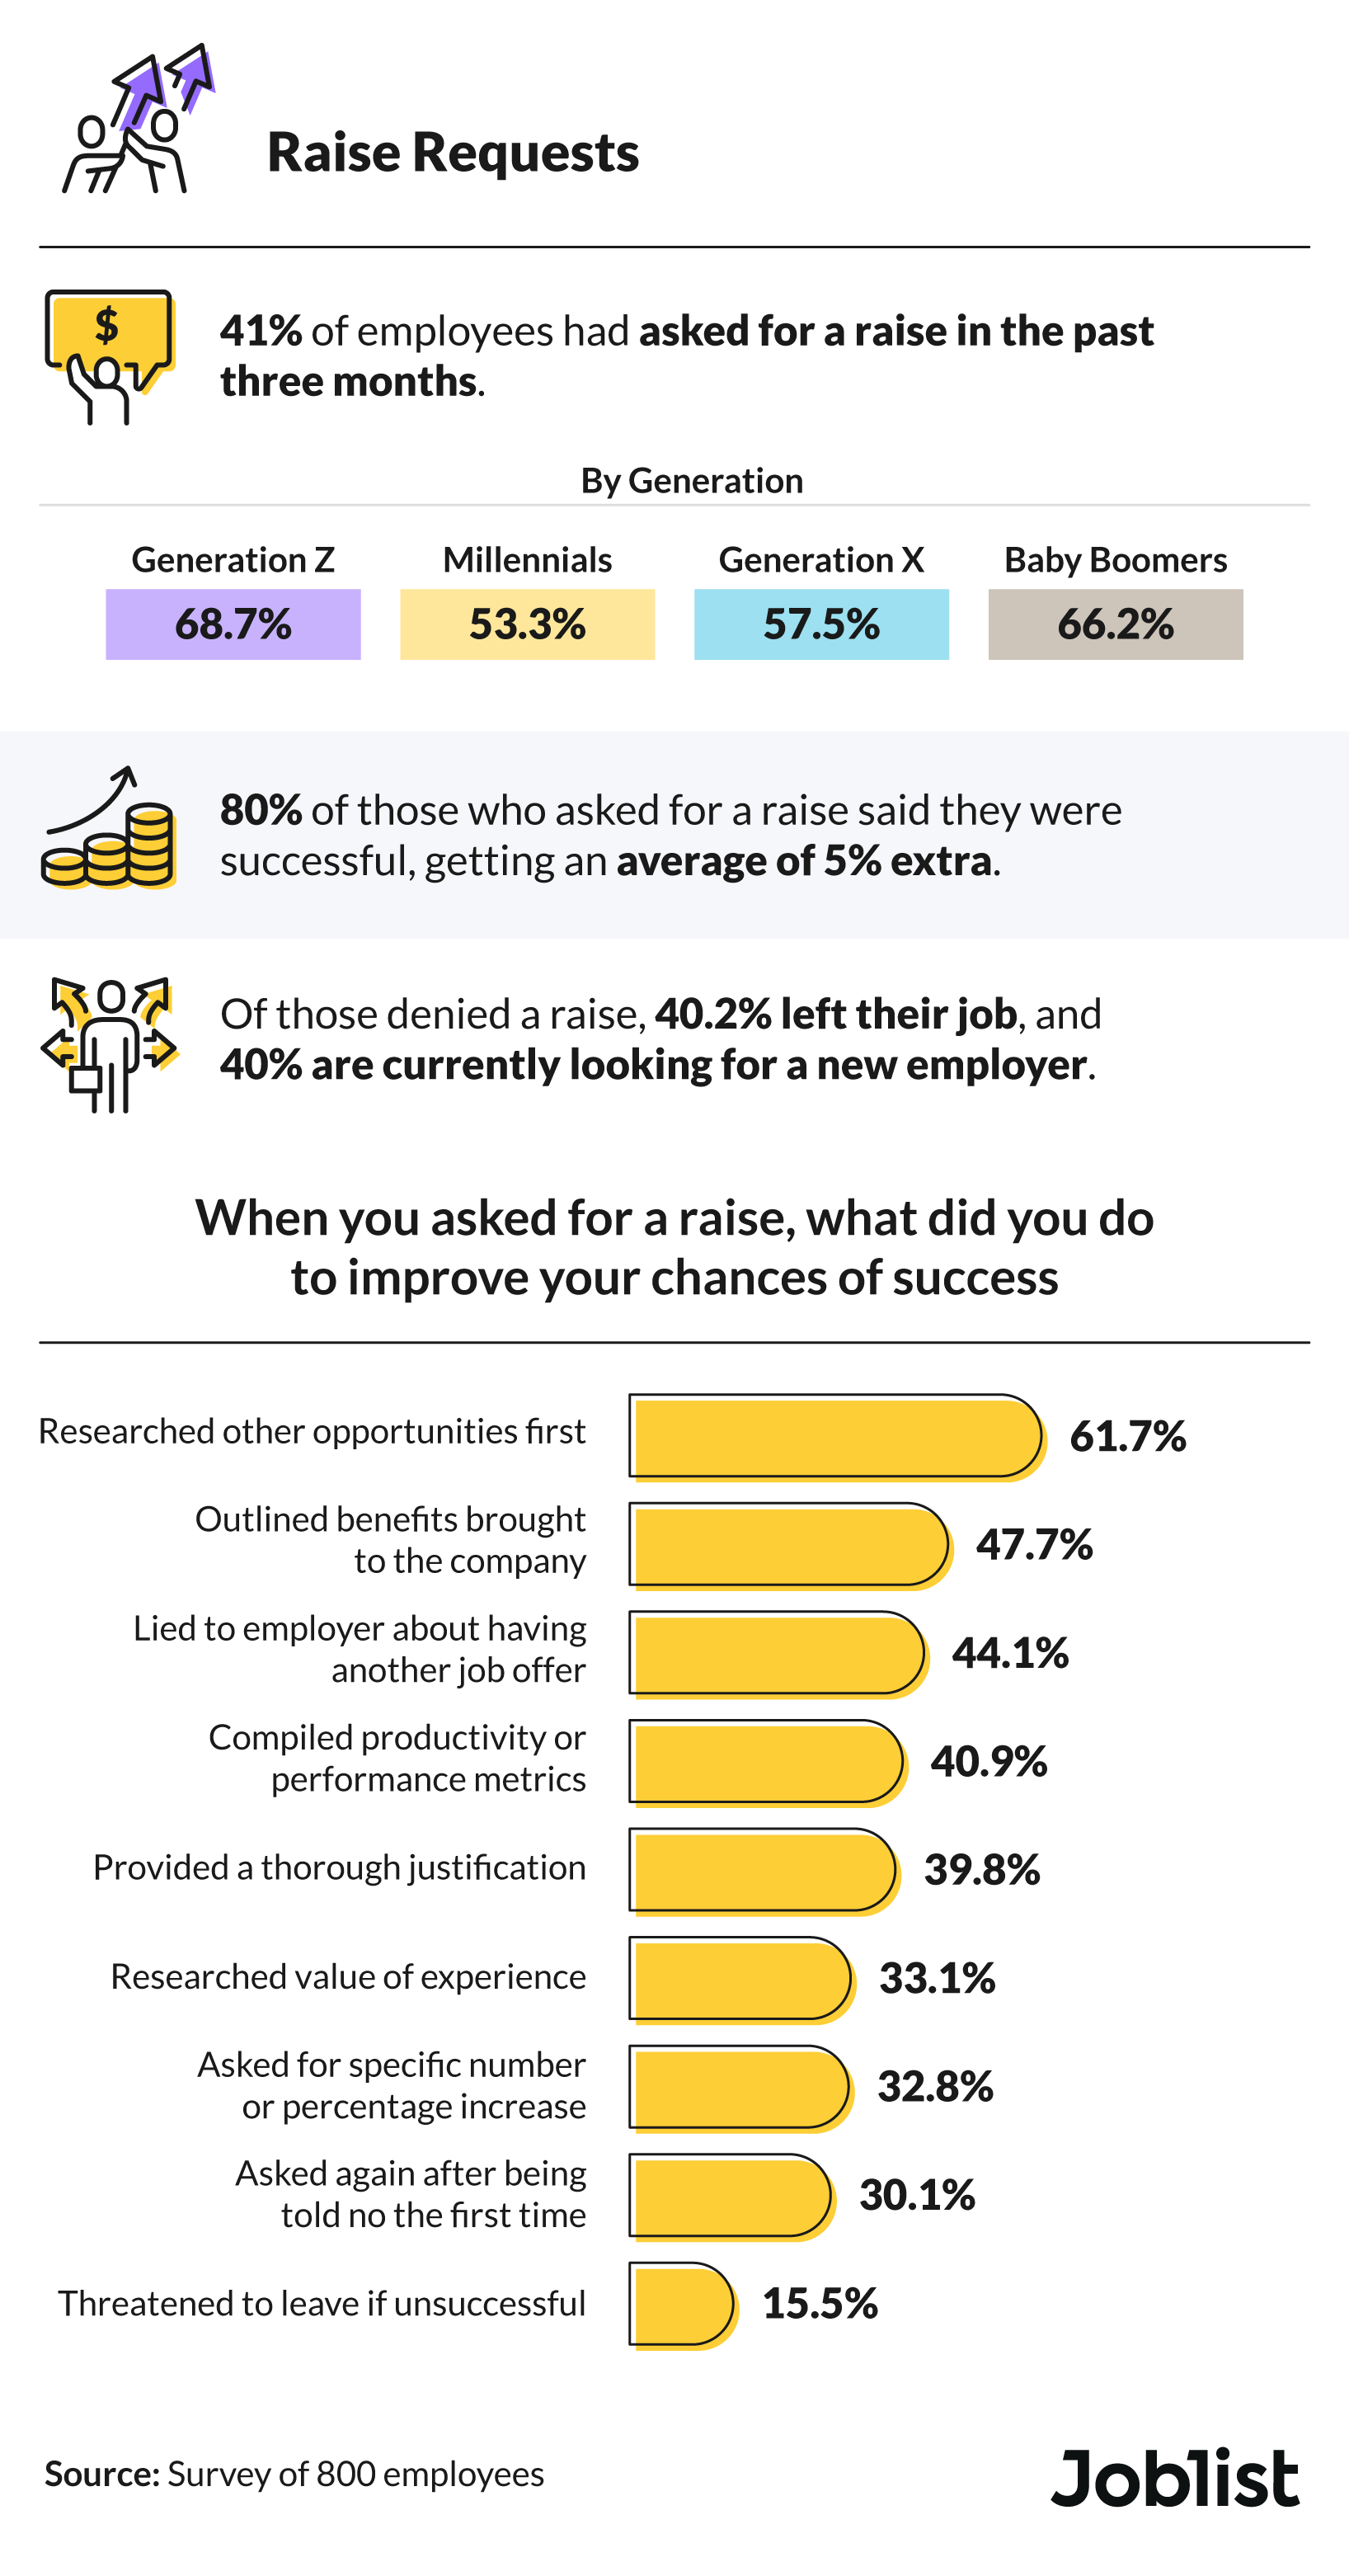 Percentage of employees who have asked for a raise in the past three months